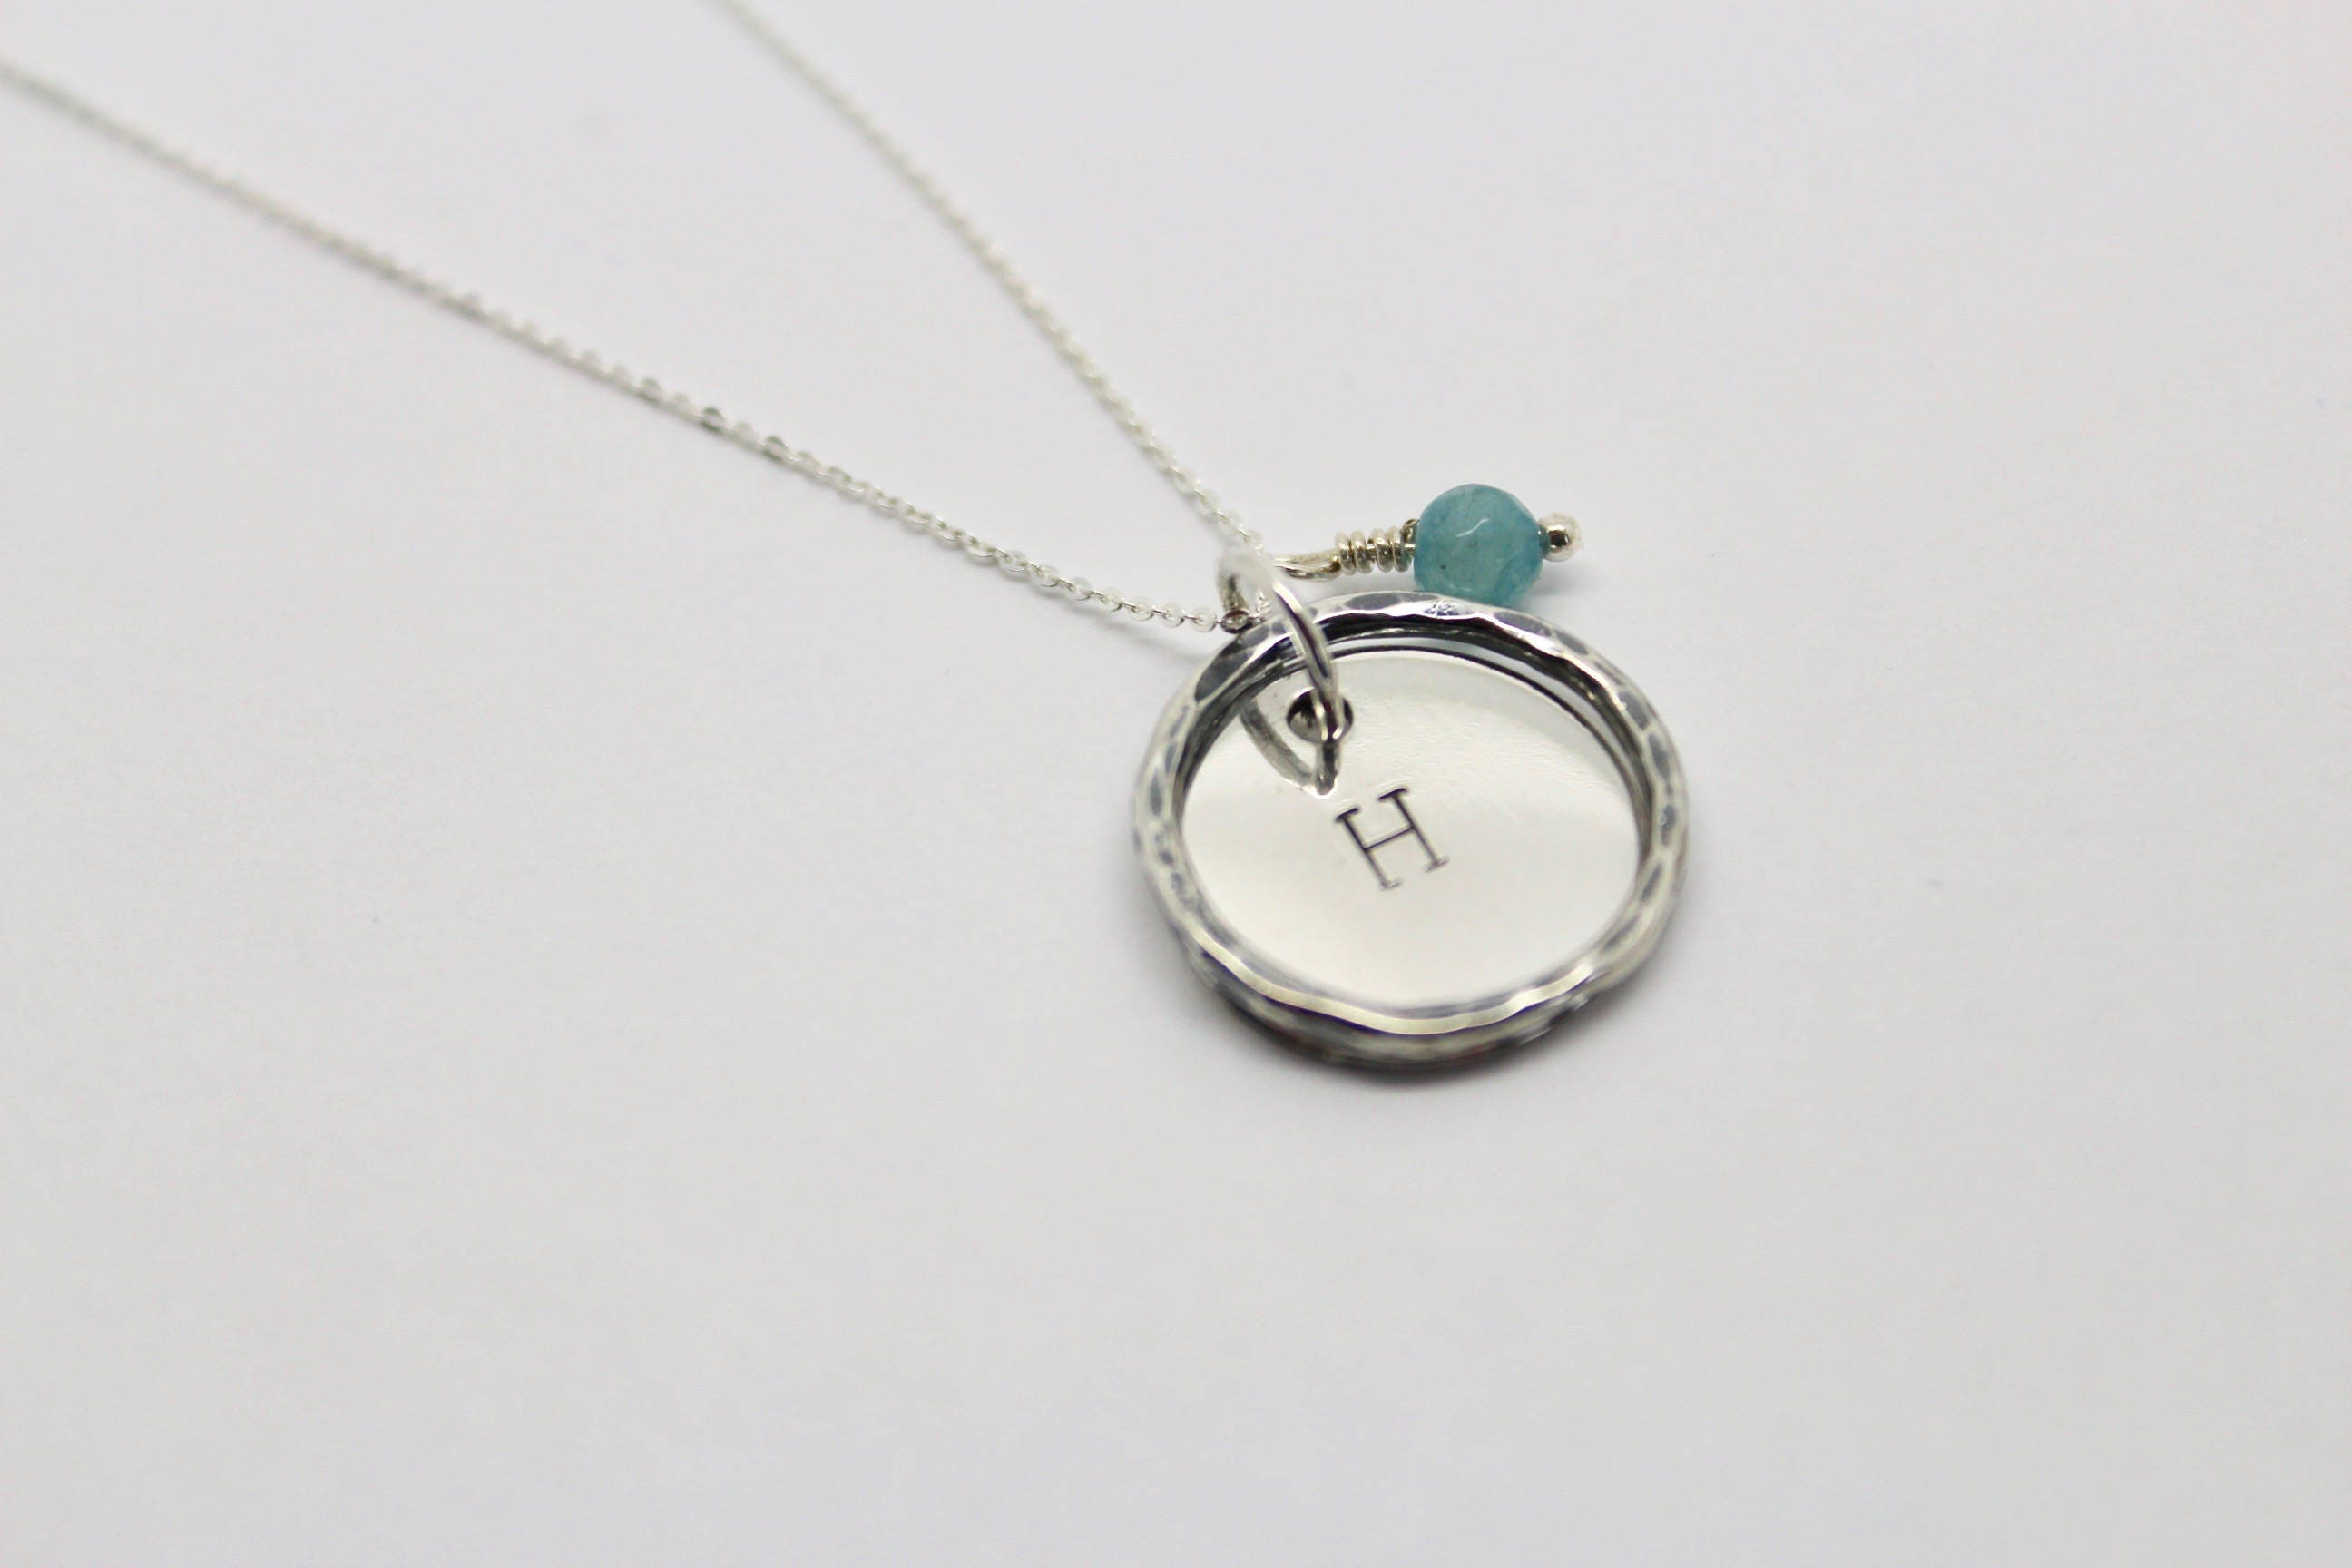 products jewellery personalised necklace with handmade initial charm made statement customised teabag pendant